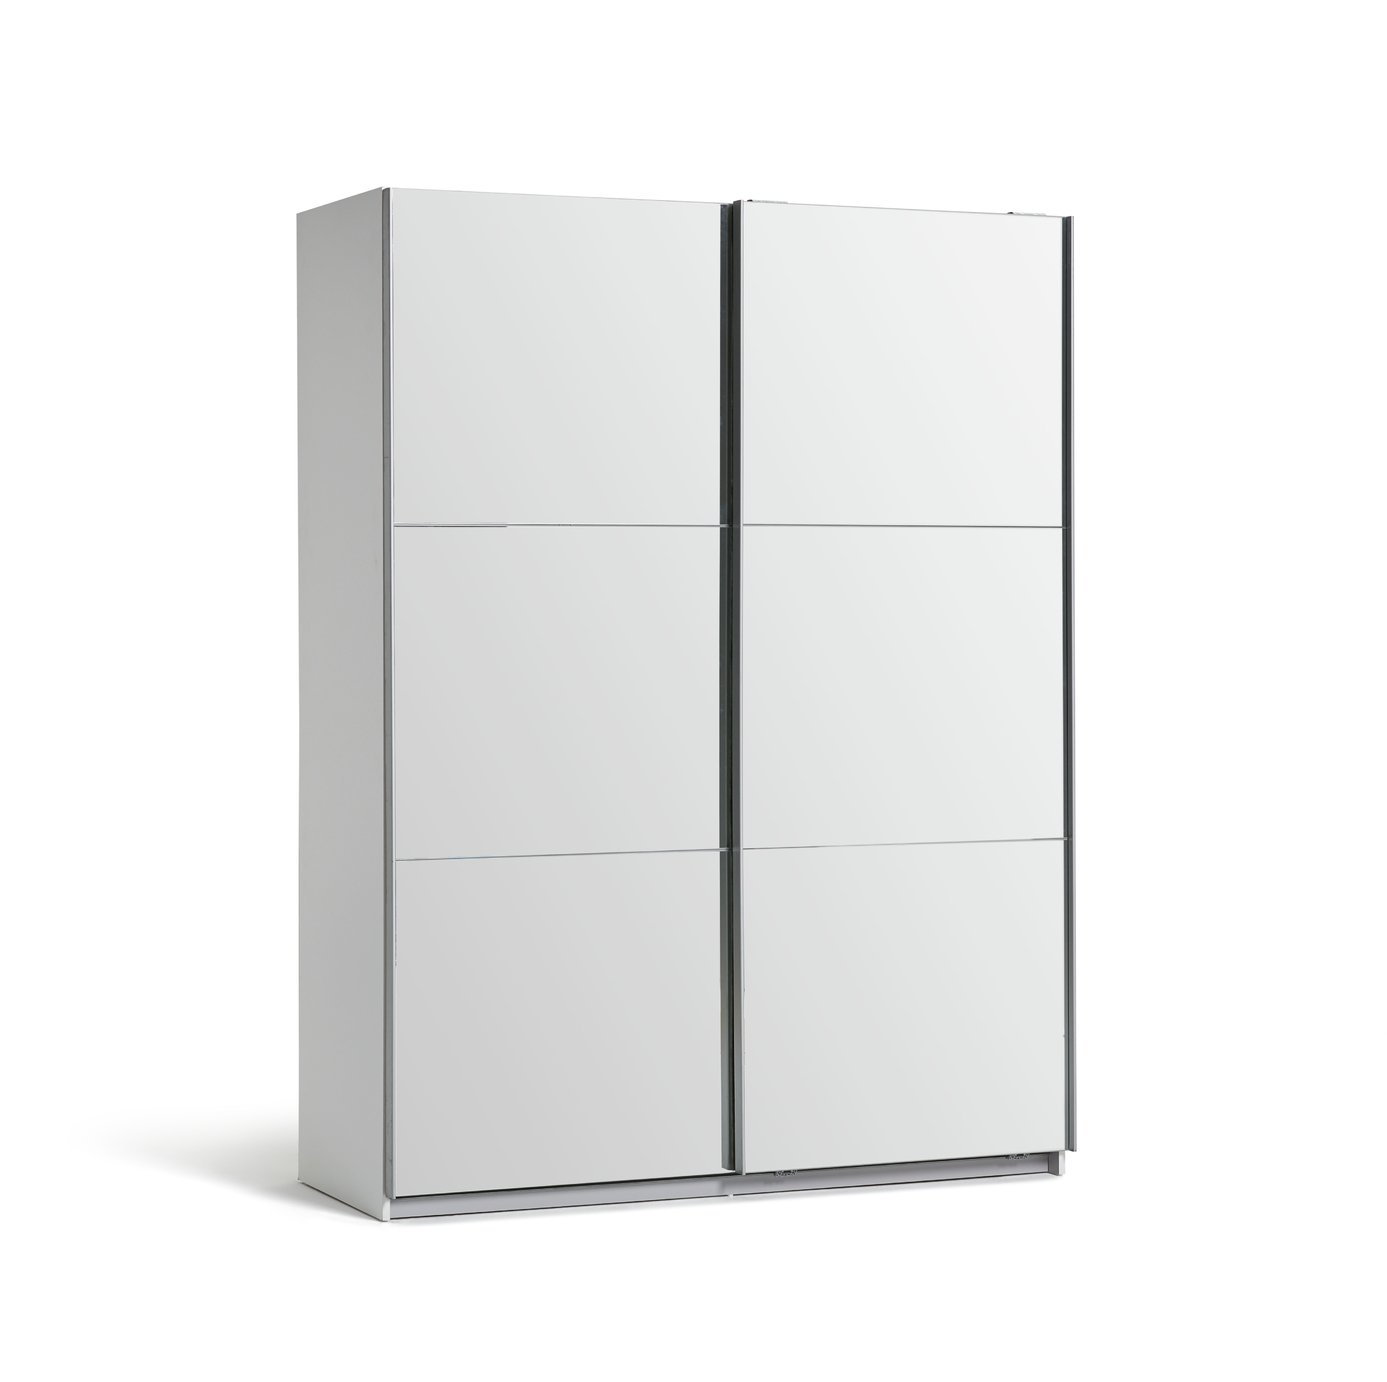 Argos Home Holsted Mirrored Medium Wardrobe - White